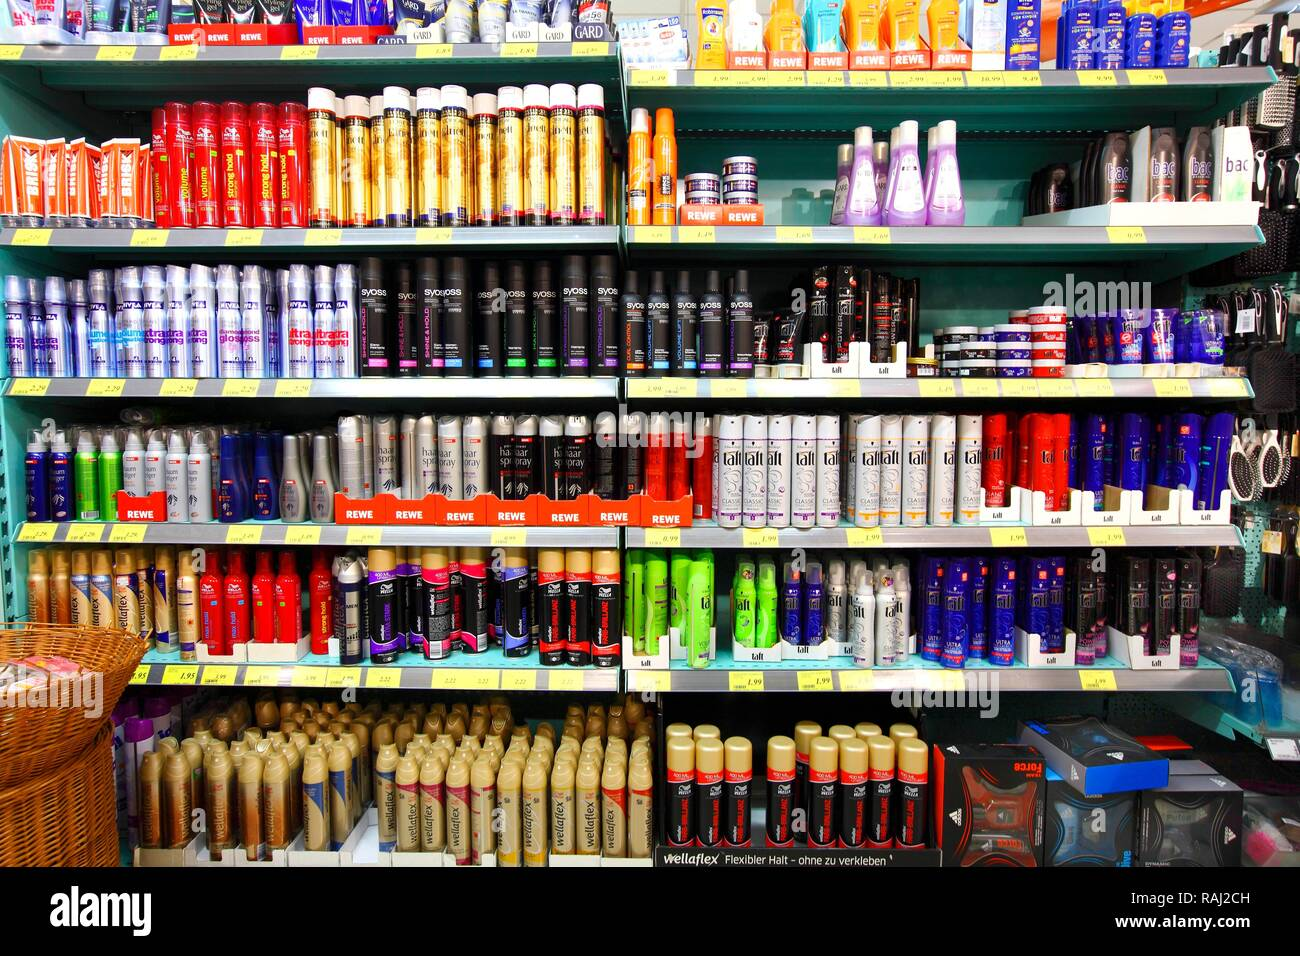 Hair care products, shelves, self-service - Stock Image